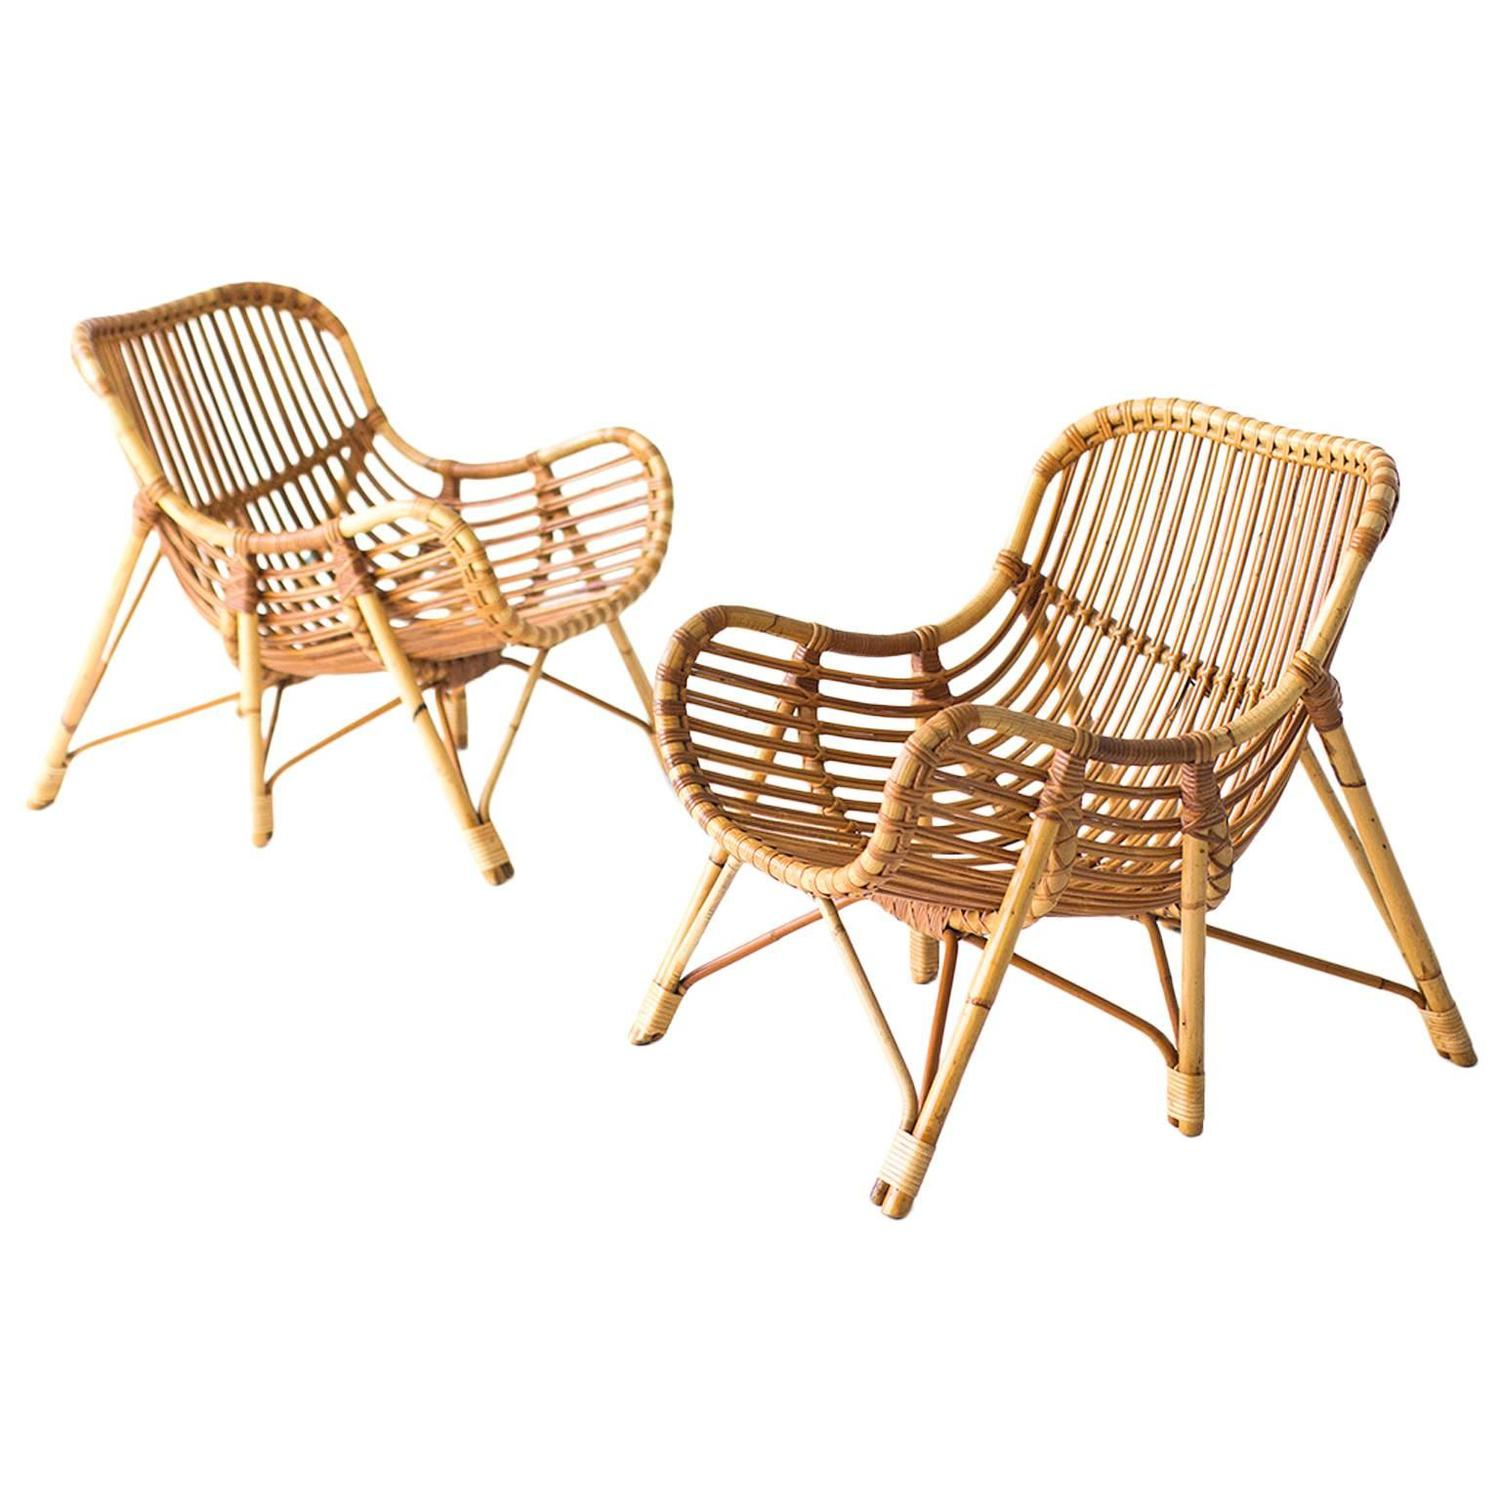 Ordinaire Danish Bamboo And Wicker Lounge Chairs By Laurids Lonborg At 1stdibs